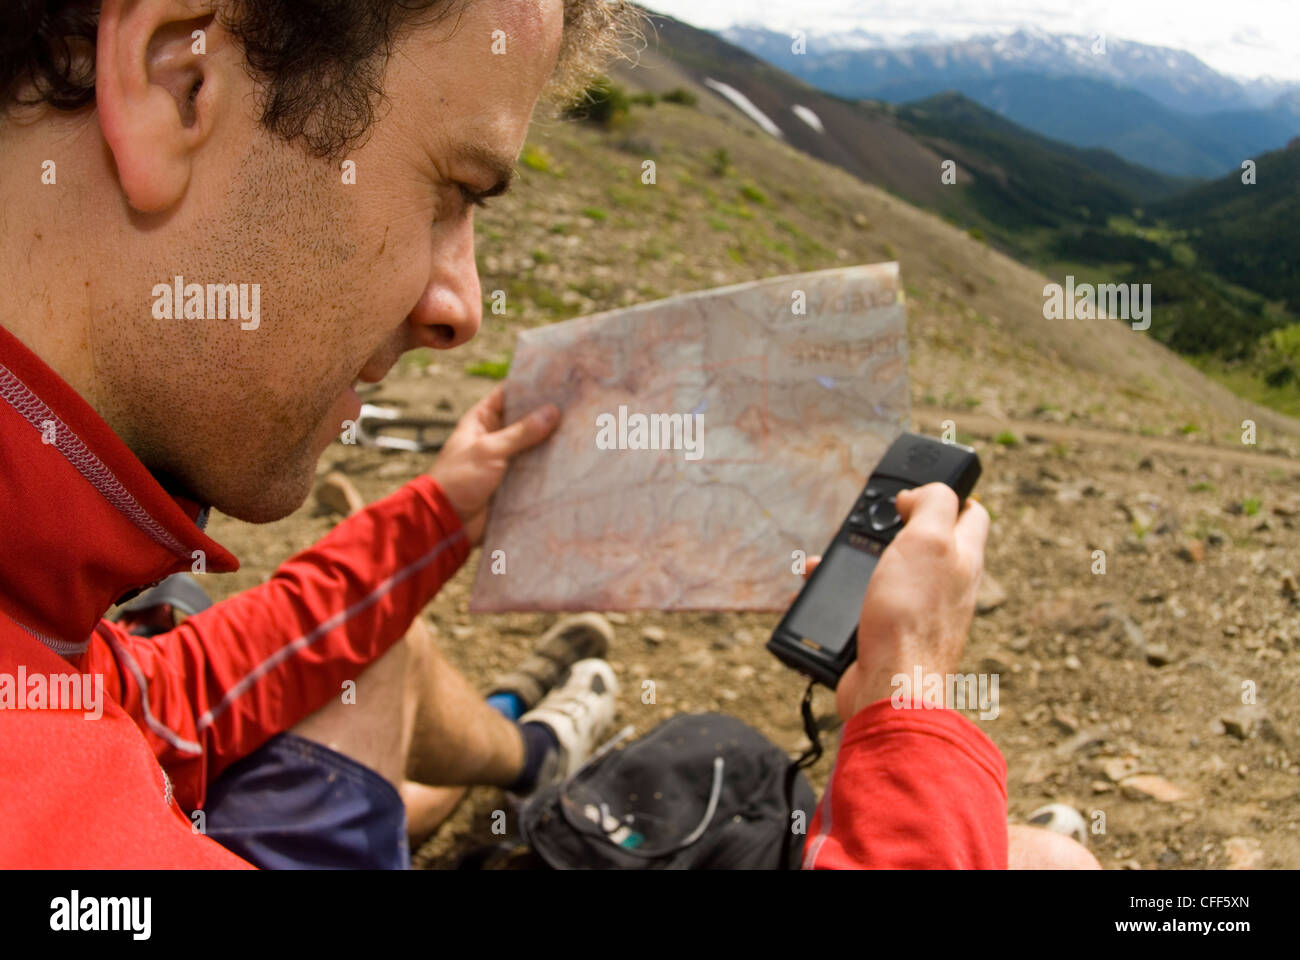 Mountain biker checks the map with a GPS unit in Windy Pass, Southern Chilcotin Mountains, British Columbia, Canada. Stock Photo